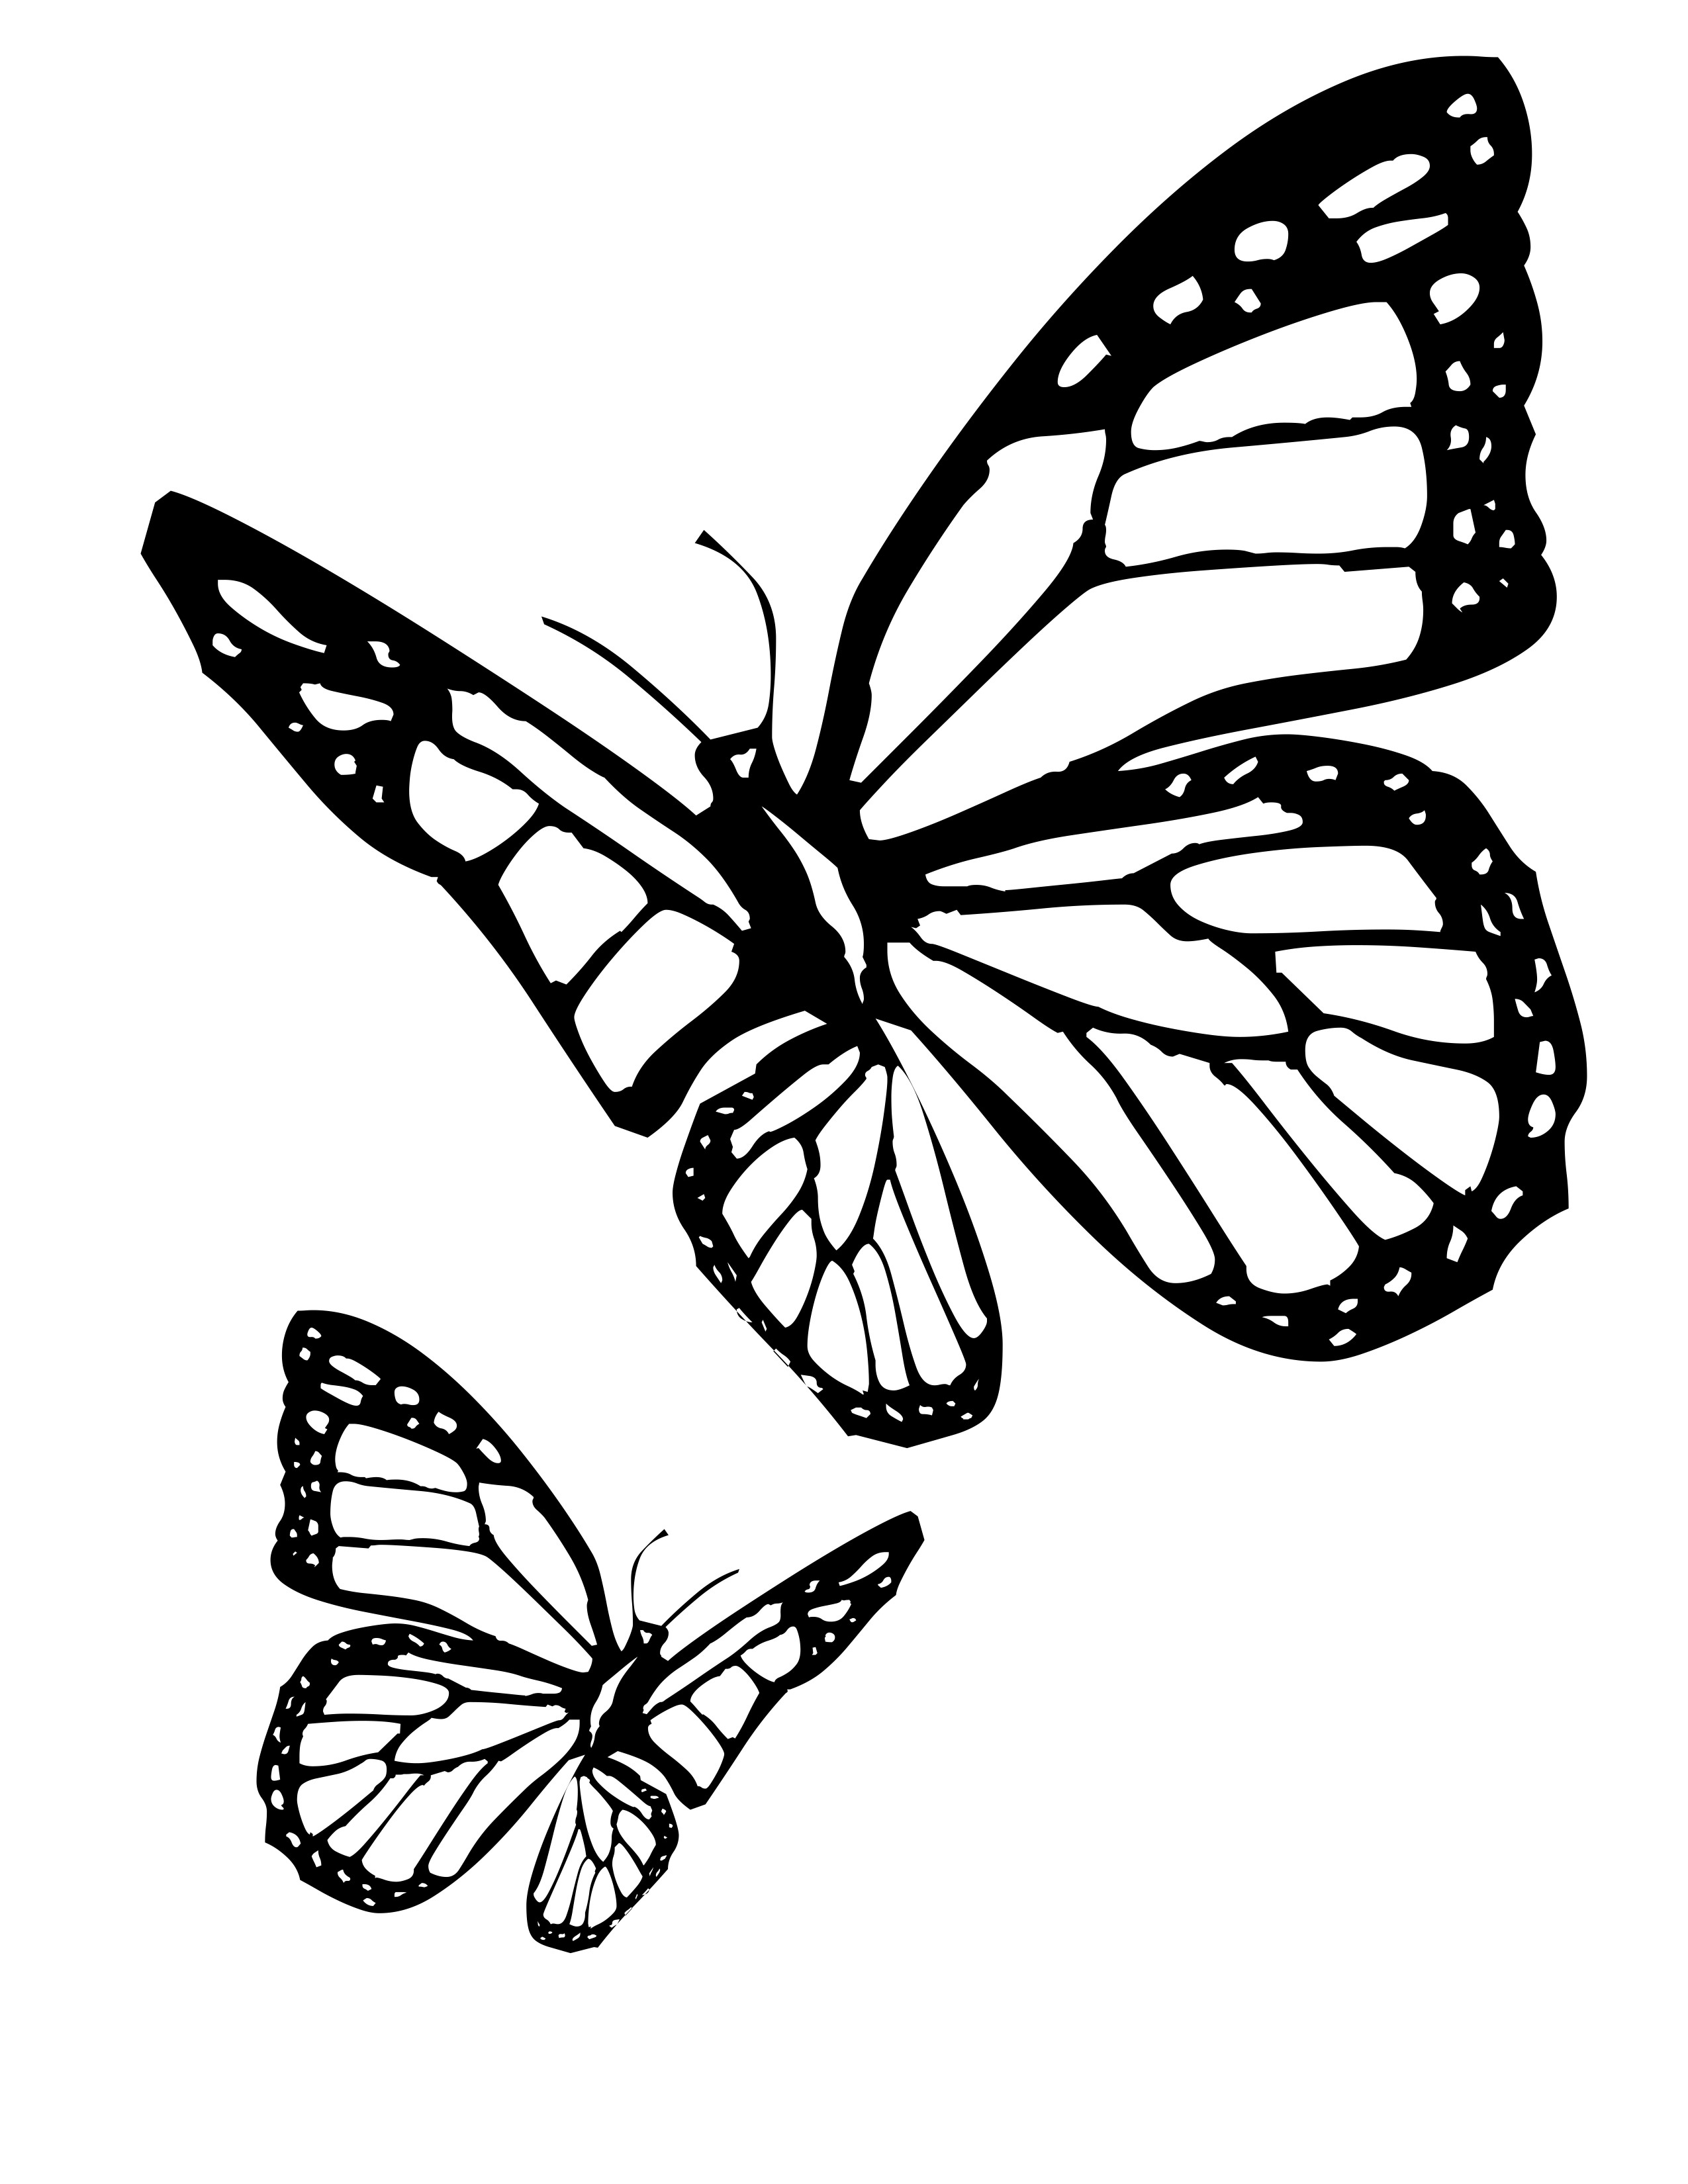 coloring pages with butterflies butterfly coloring pages with coloring pages butterflies